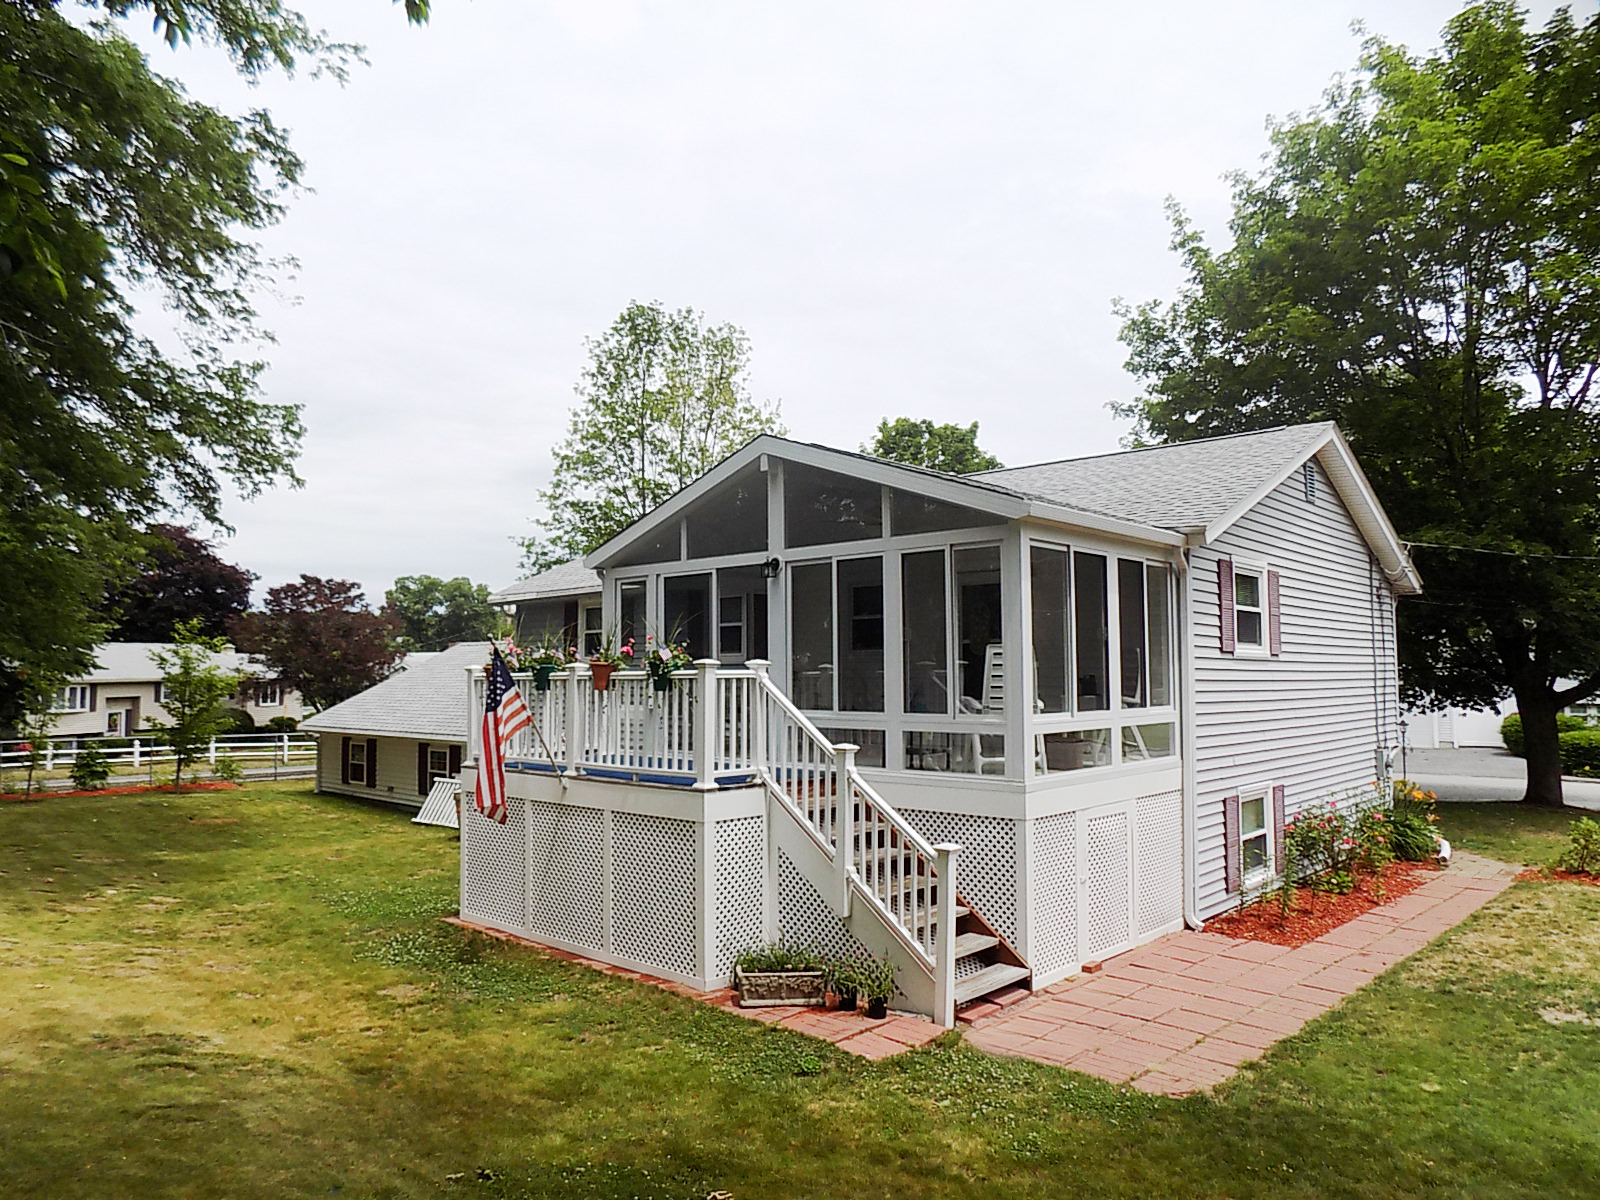 Lowell, Massachusetts sunroom installation by Betterliving Sunrooms of NH